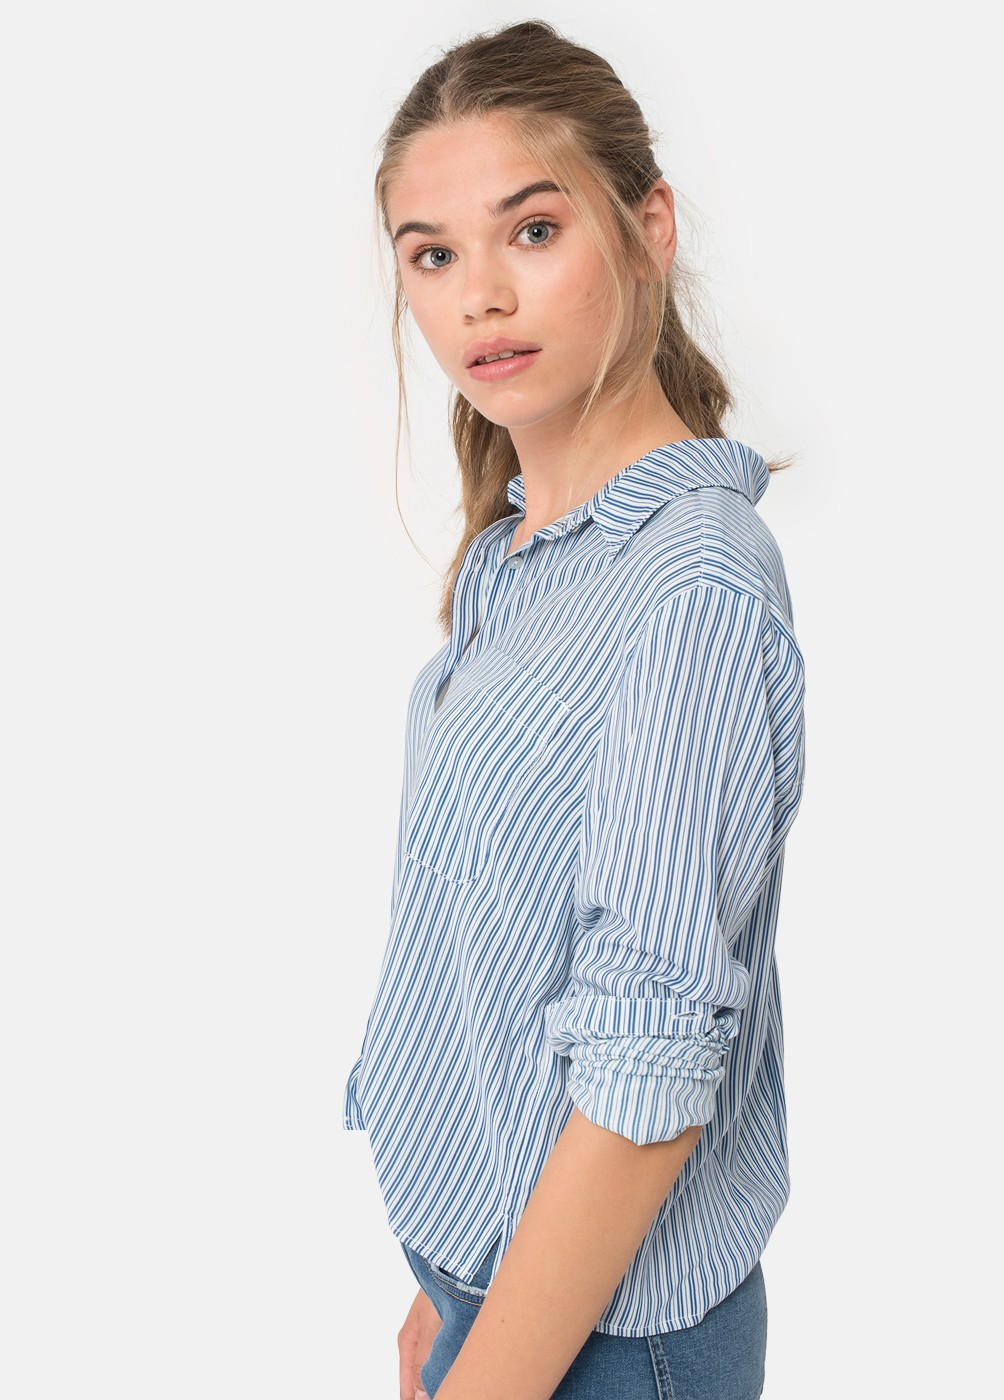 BORA T-SHIRT WITH PRINTED STRIPES